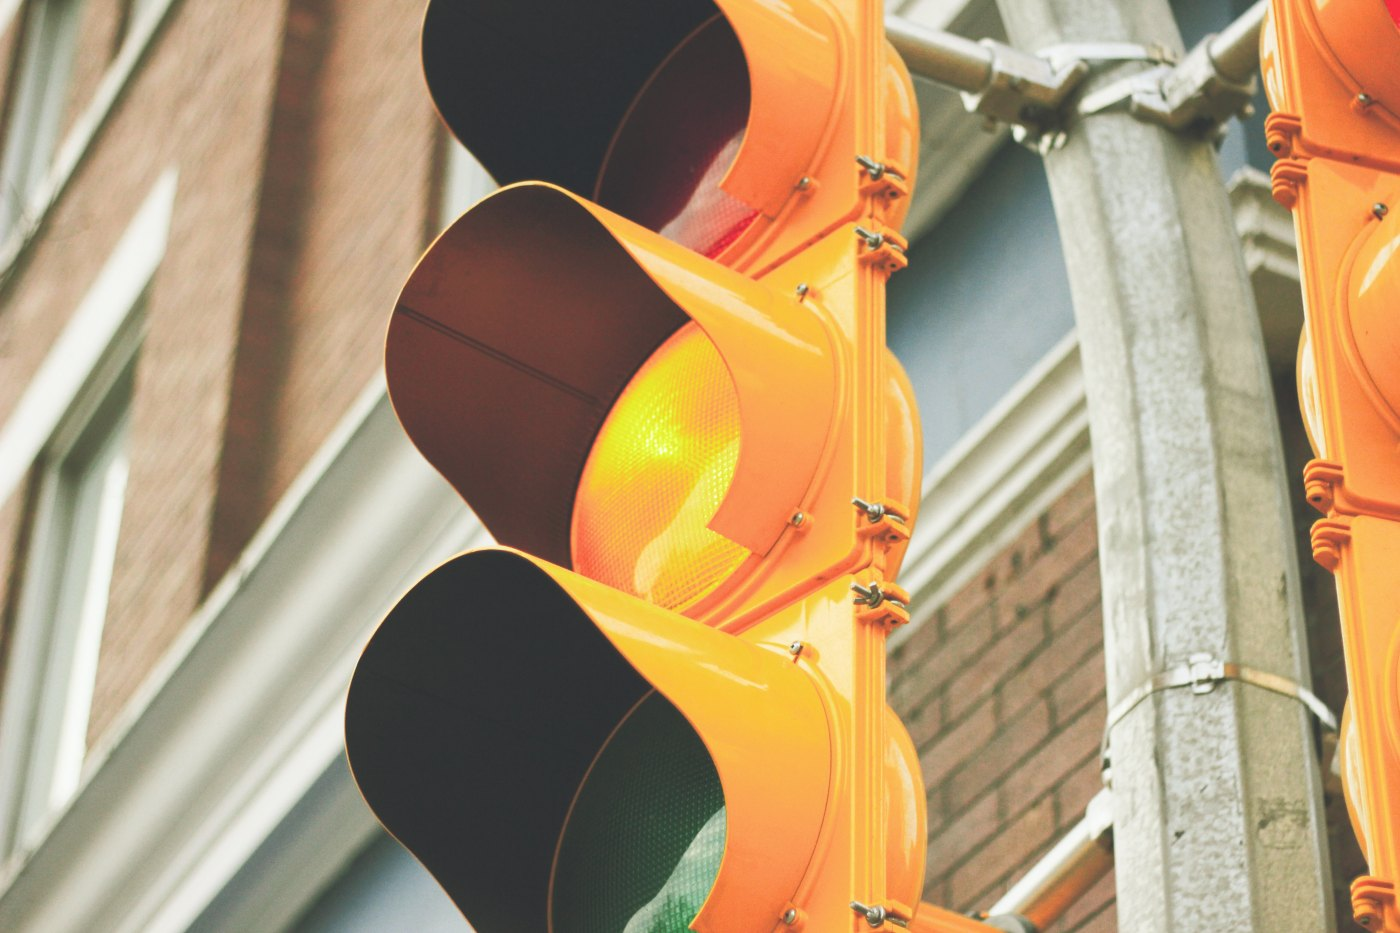 yellow traffic light, how we move through business ethics